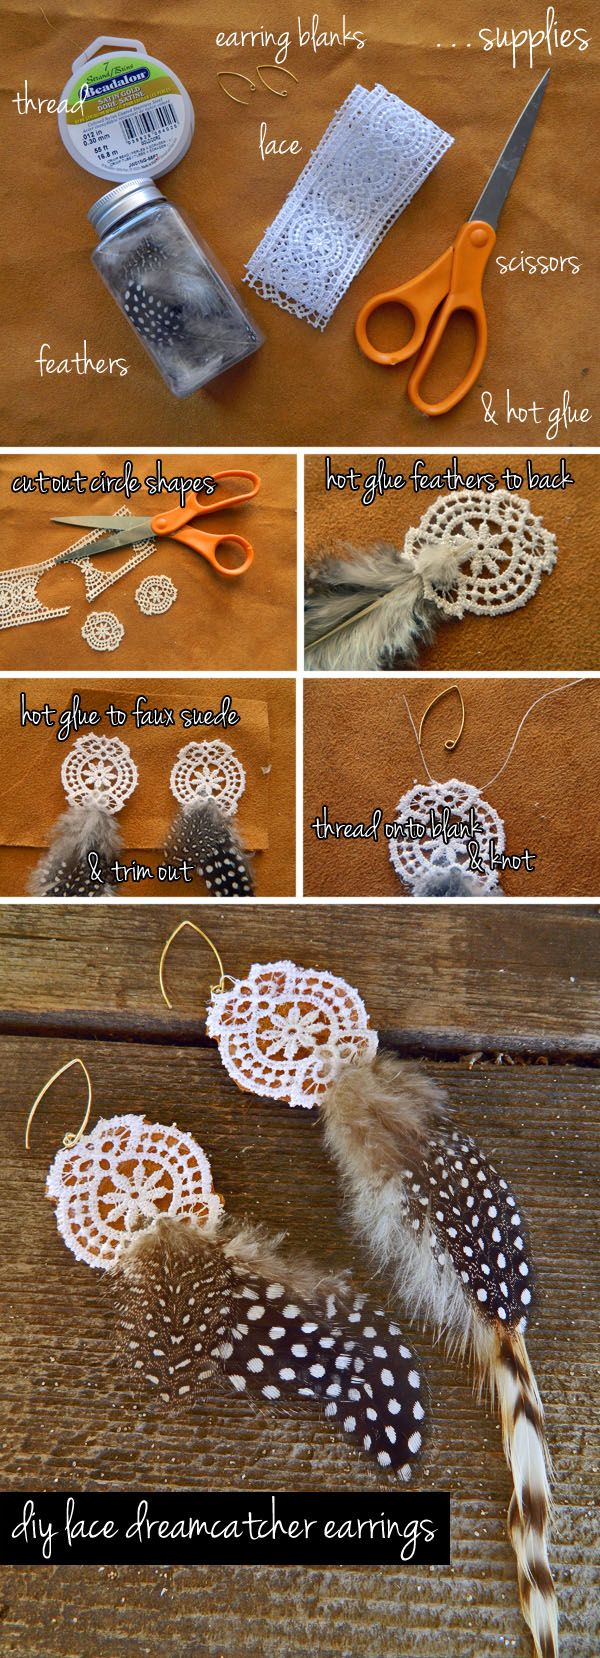 diy lace dream catcher earrings